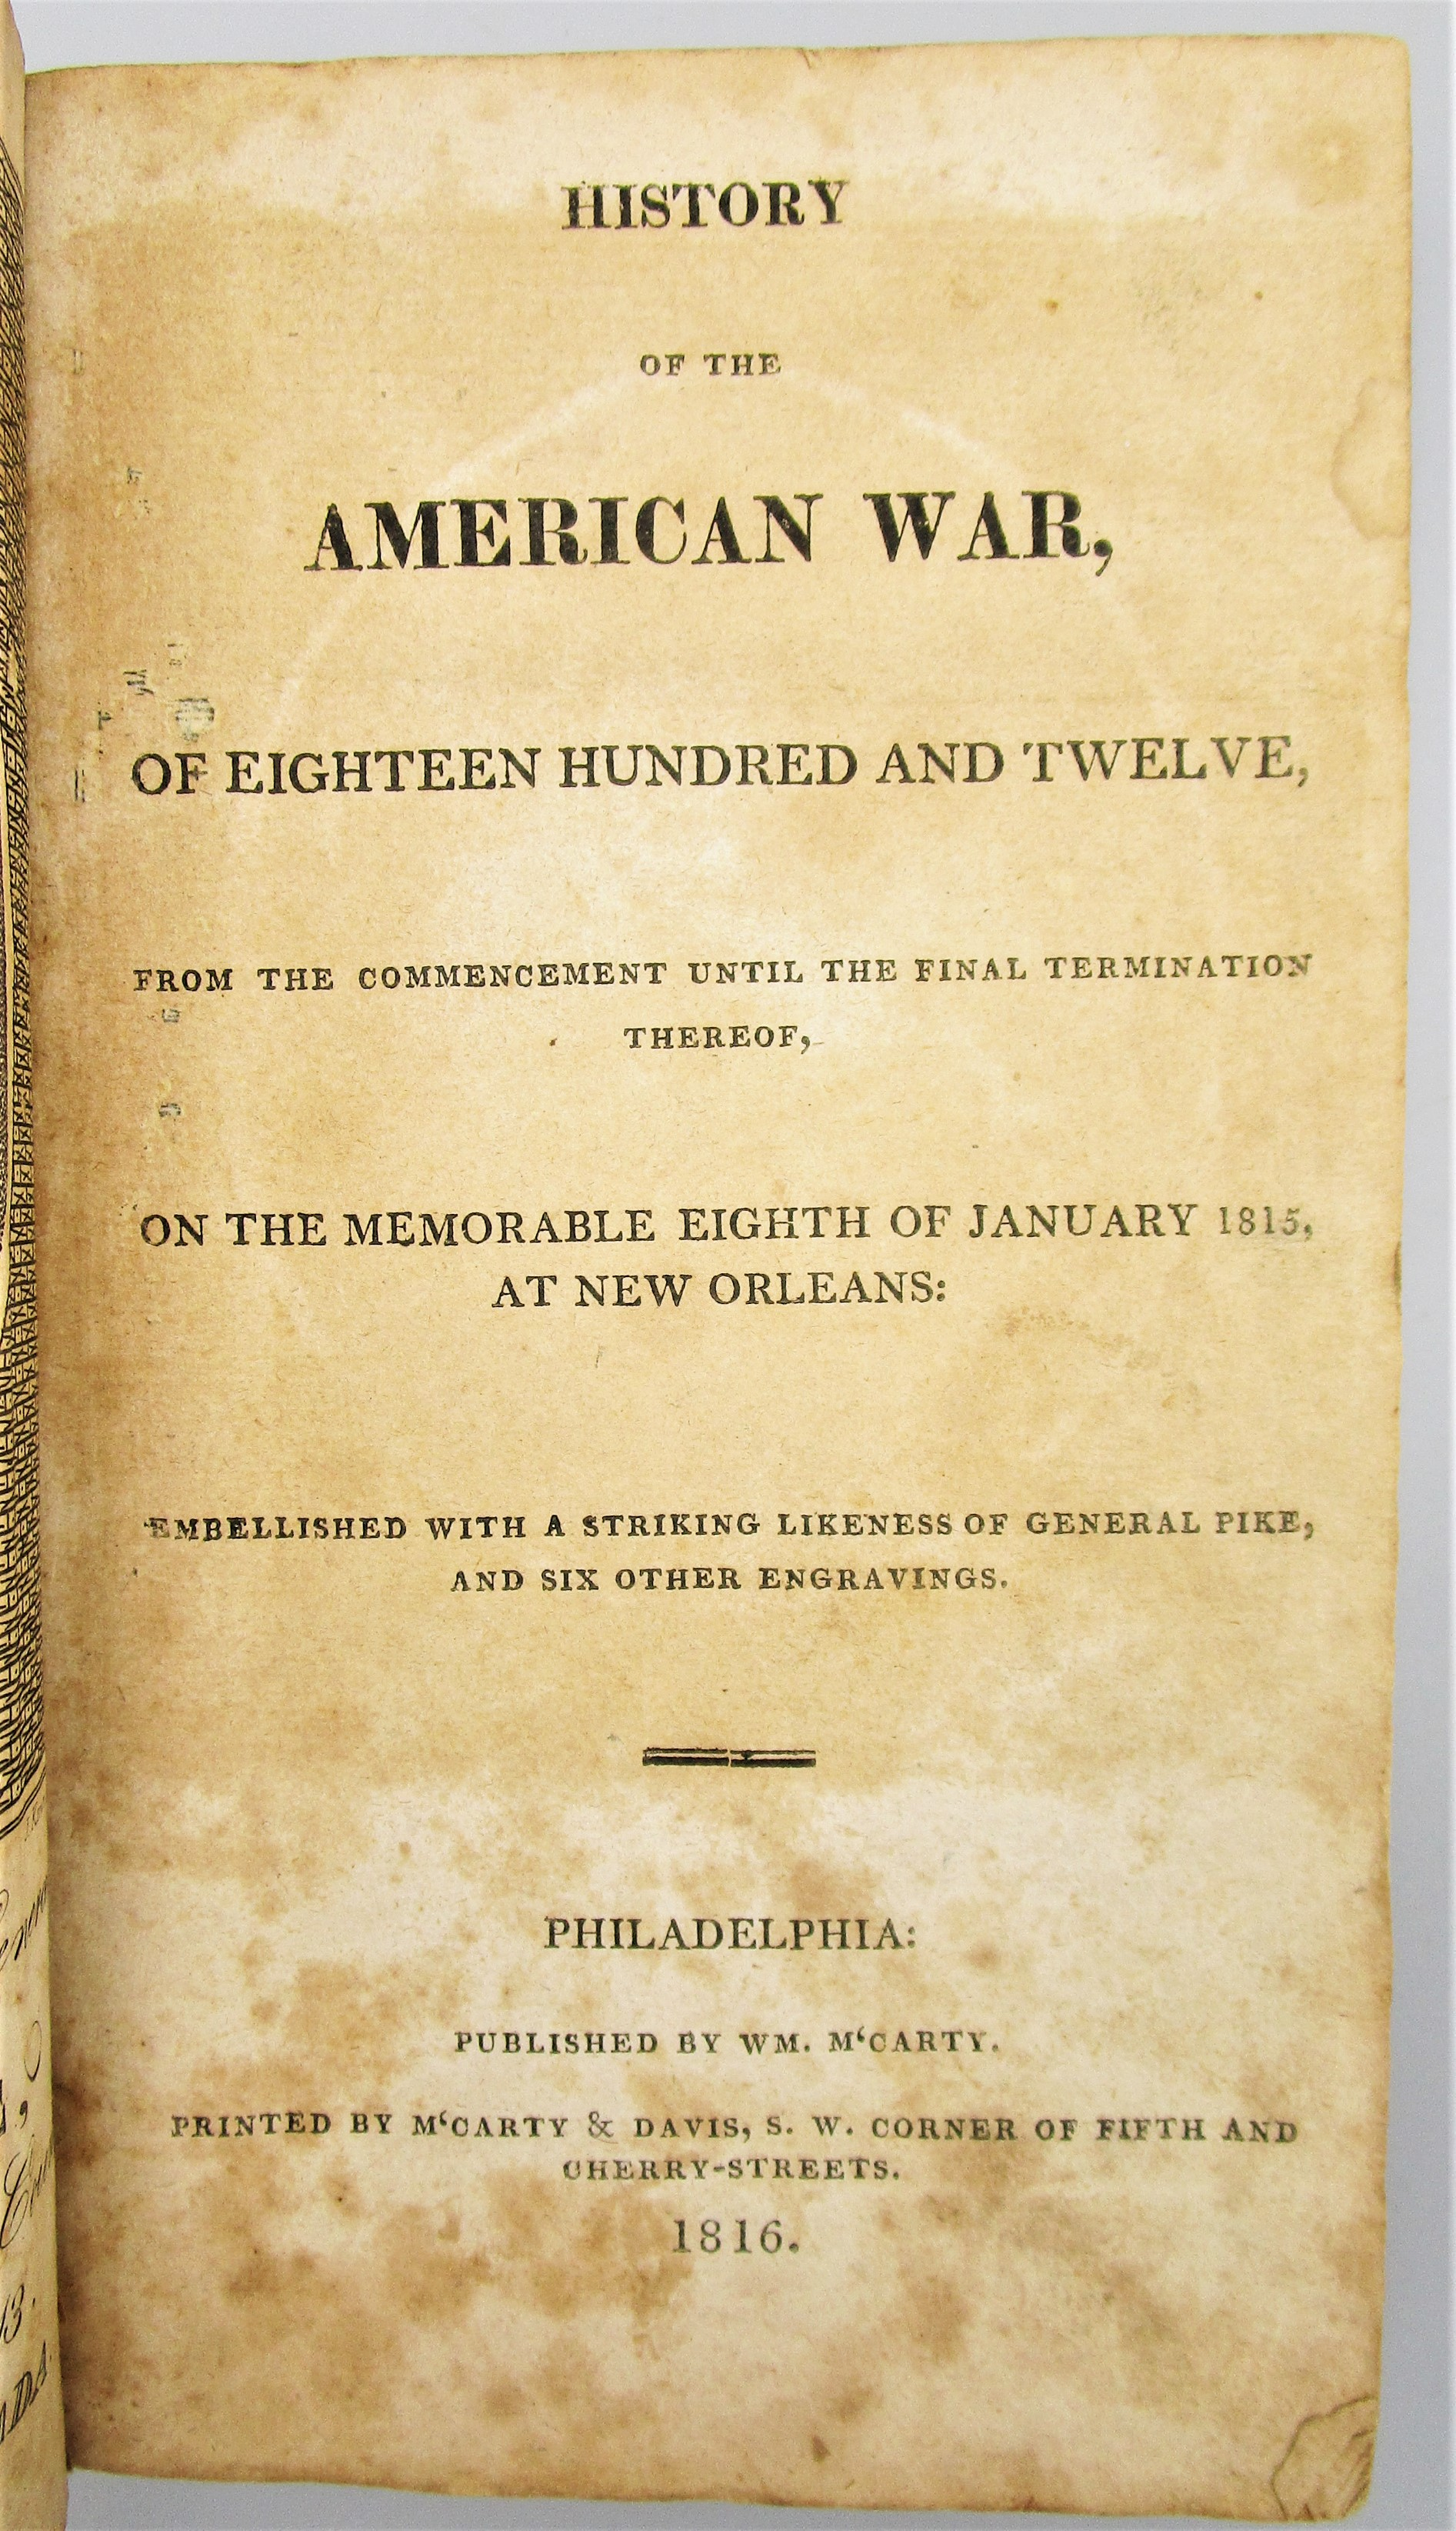 HISTORY OF THE AMERICAN WAR OF 1812 - 1816 [1st Ed]